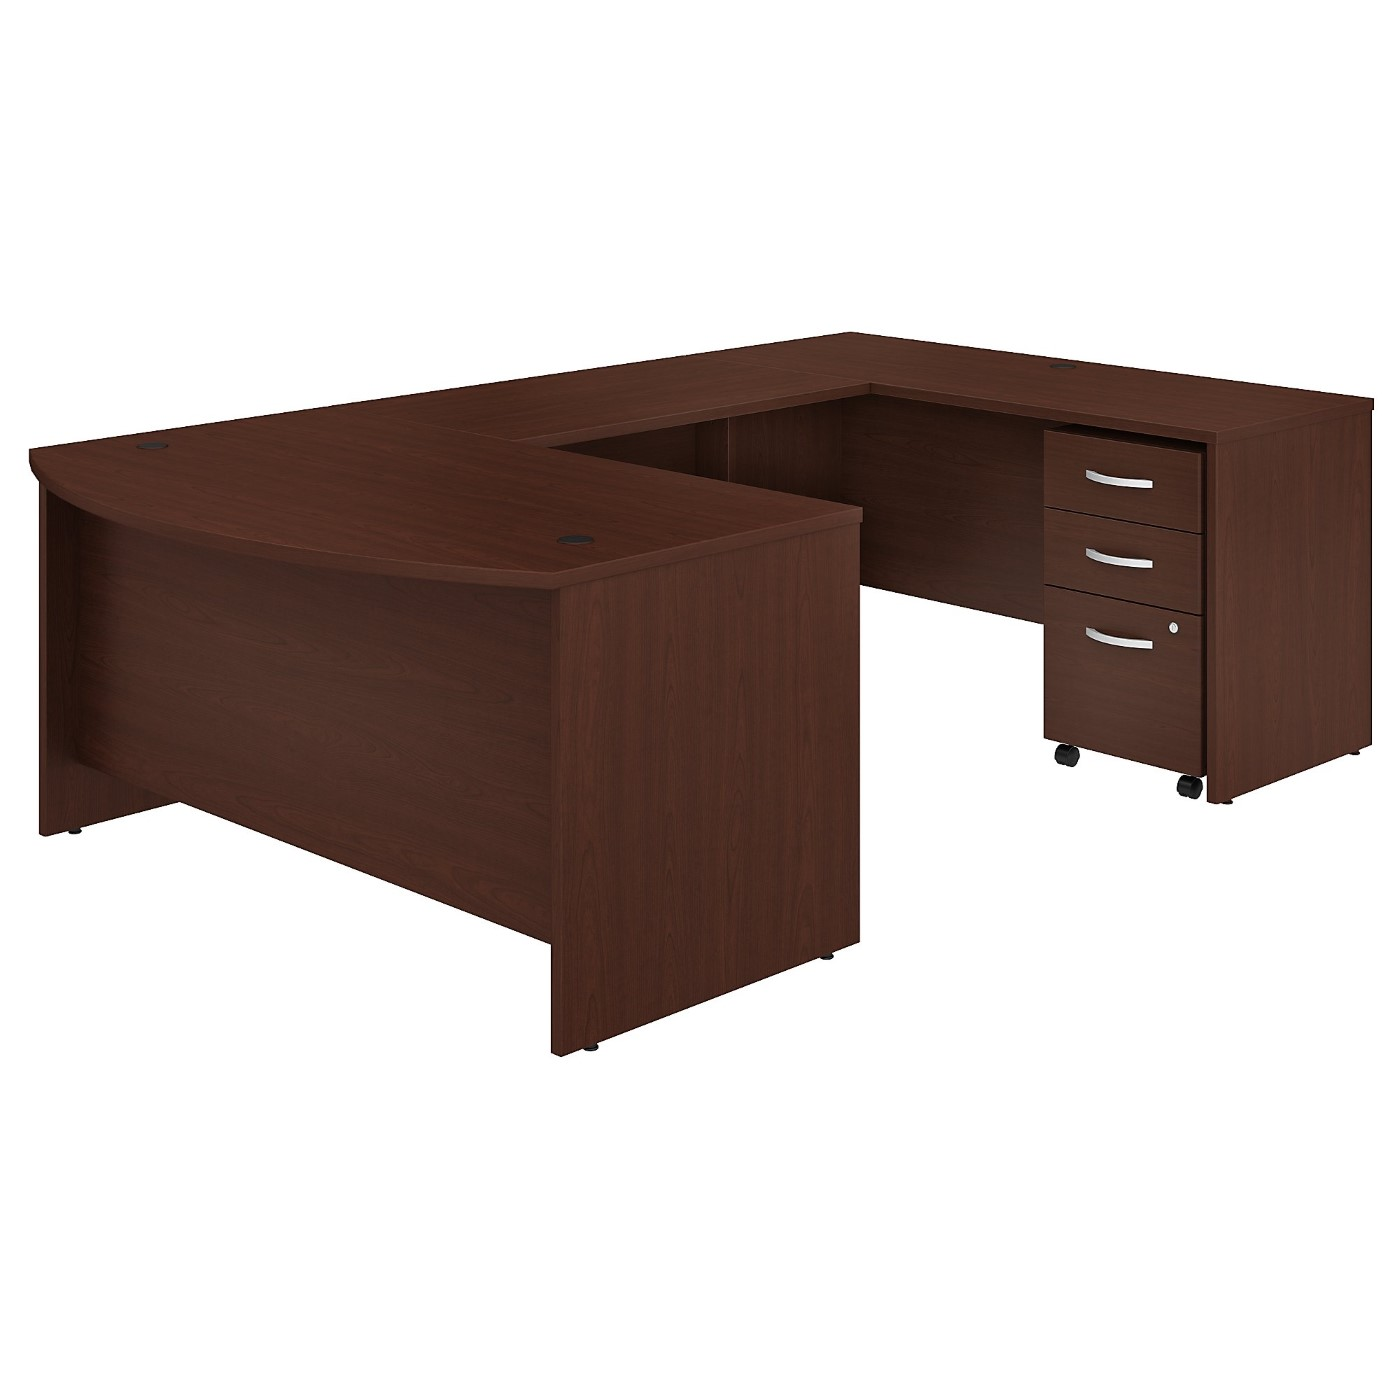 BUSH BUSINESS FURNITURE STUDIO C 60W X 36D U SHAPED DESK WITH MOBILE FILE CABINET. FREE SHIPPING SALE DEDUCT 10% MORE ENTER '10percent' IN COUPON CODE BOX WHILE CHECKING OUT.